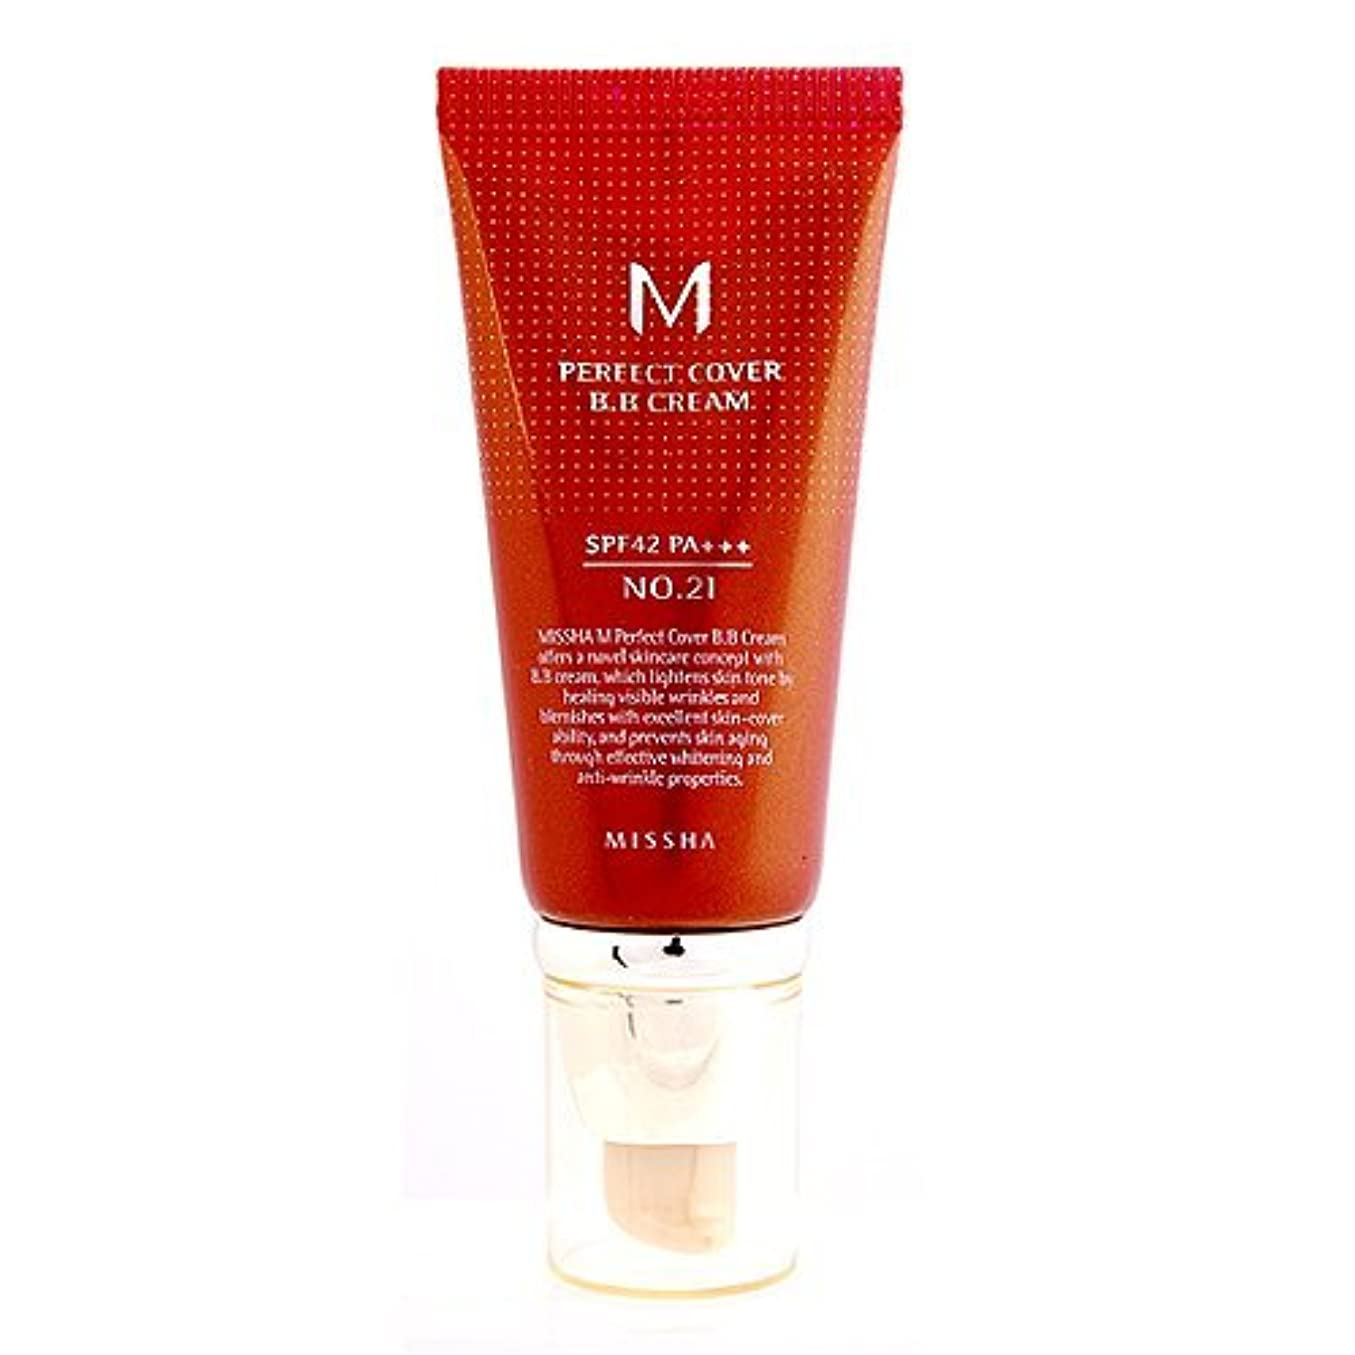 約束する電球増幅器Missha M Perfect Cover B.B. Cream SPF 42 PA+++ 21 Light Beige, 1.69oz, 50ml